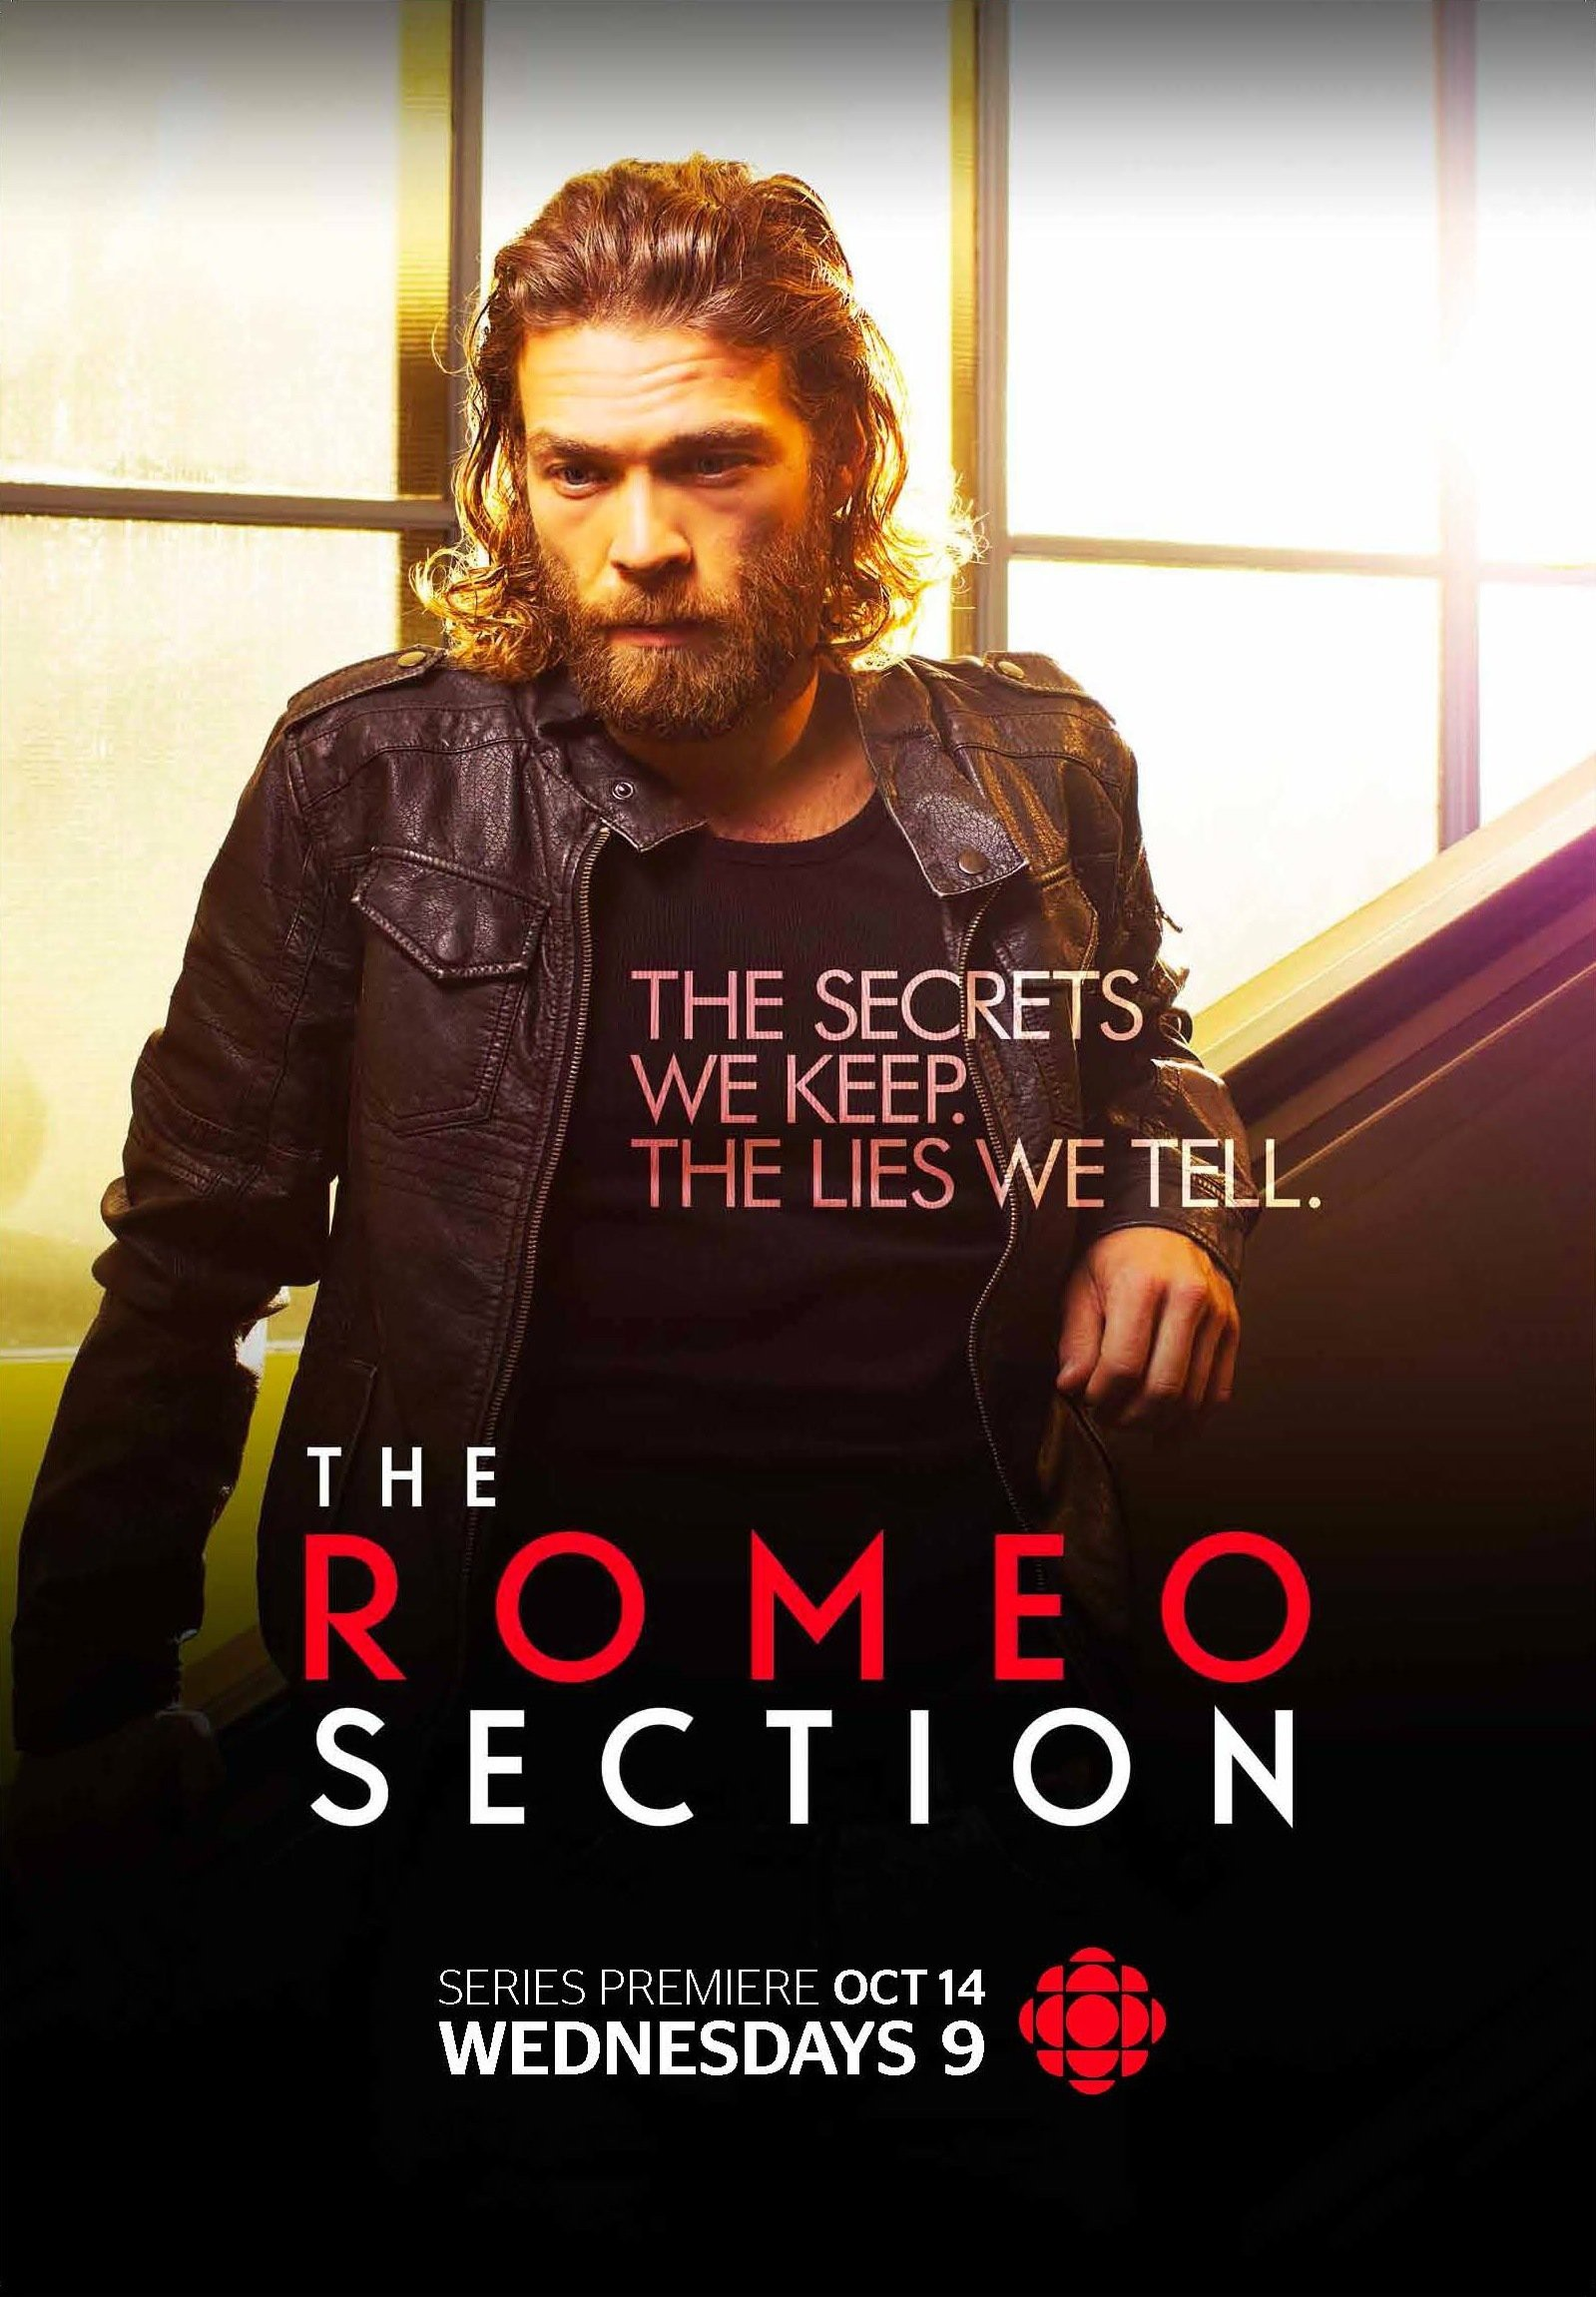 The-Romeo-Section-Season-1 poster goldposter com 3